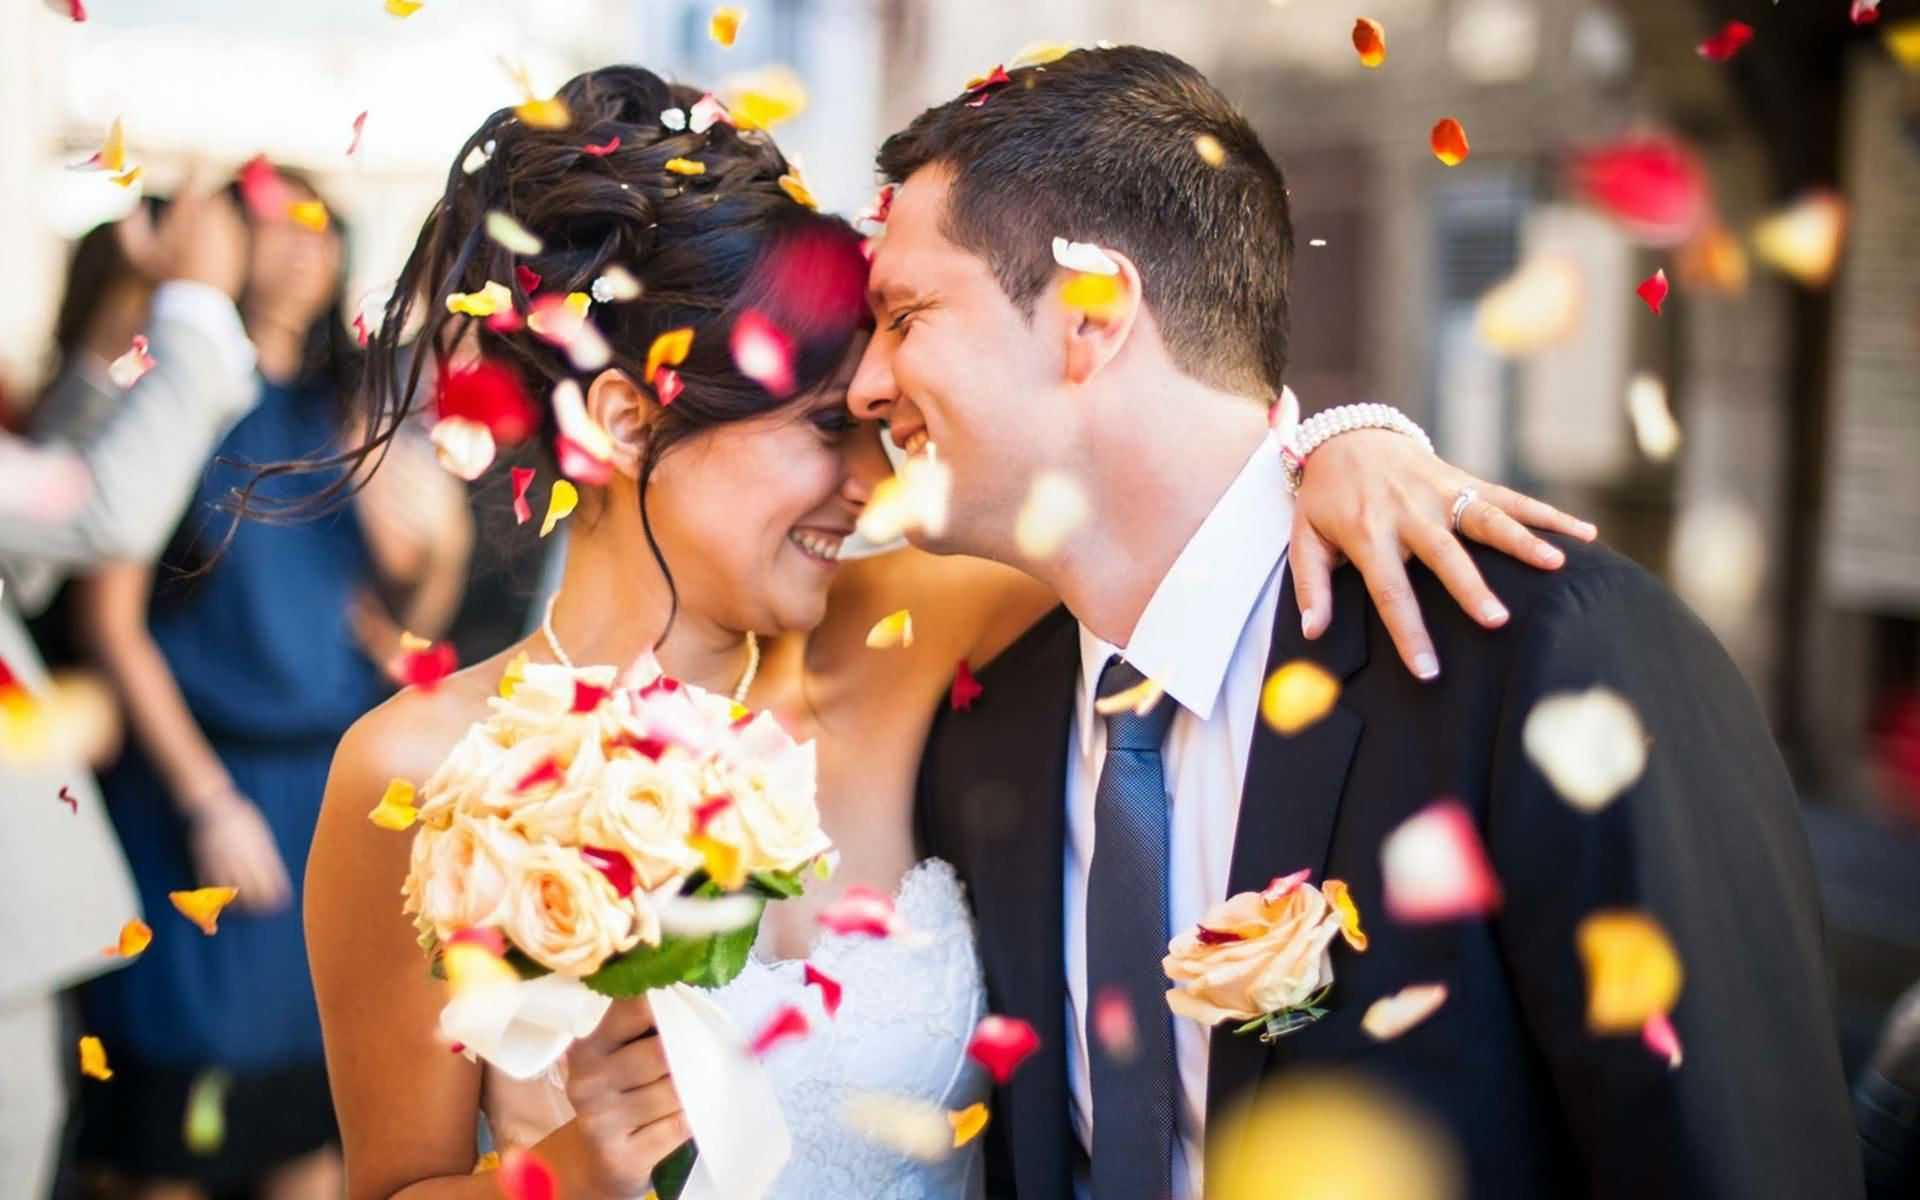 marraige Marriage definition, (broadly) any of the diverse forms of interpersonal union established in various parts of the world to form a familial bond that is recognized legally, religiously.